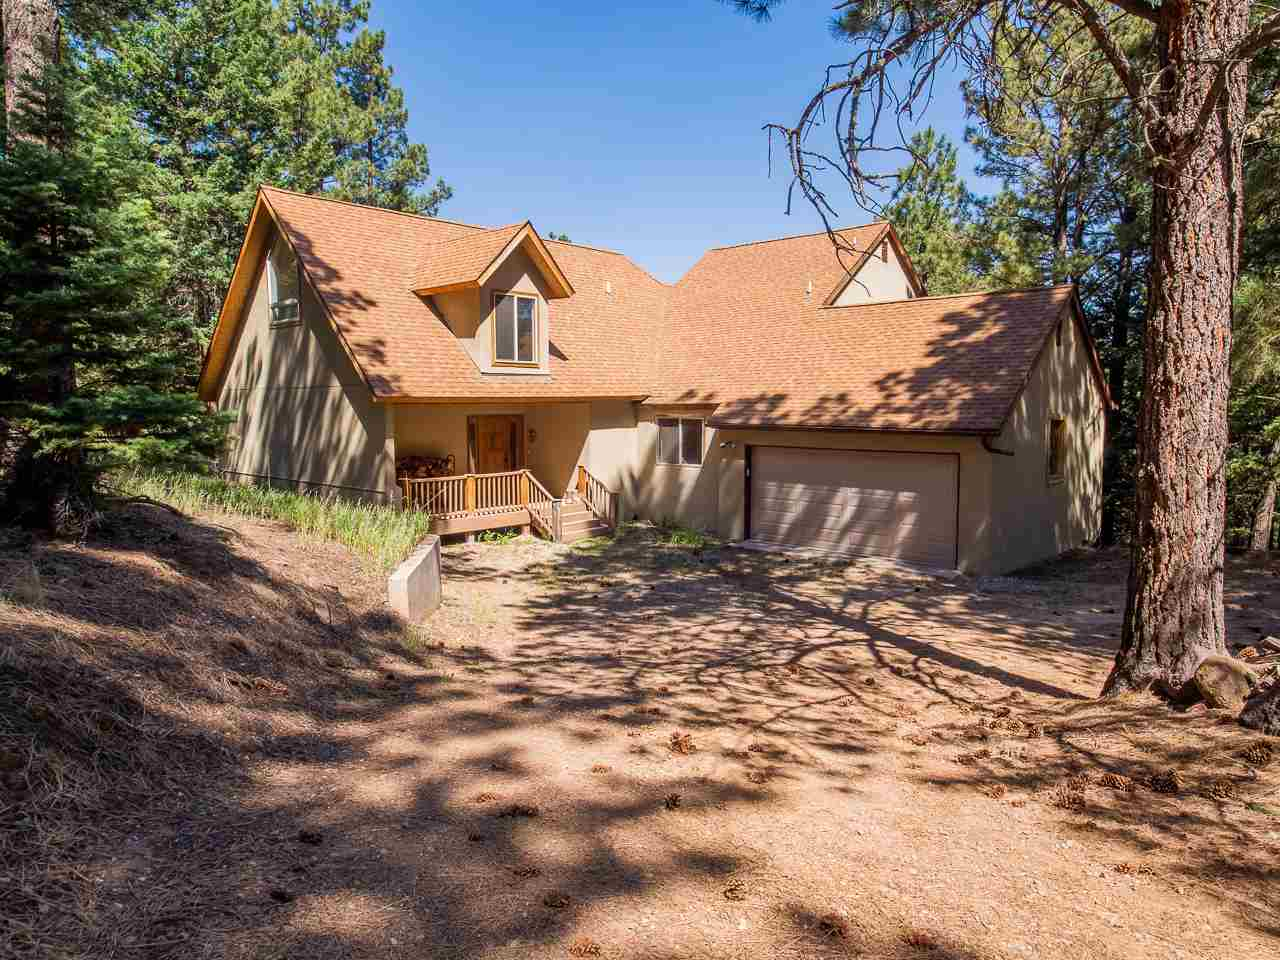 78 El Camino Real, Angel Fire, NM 87710